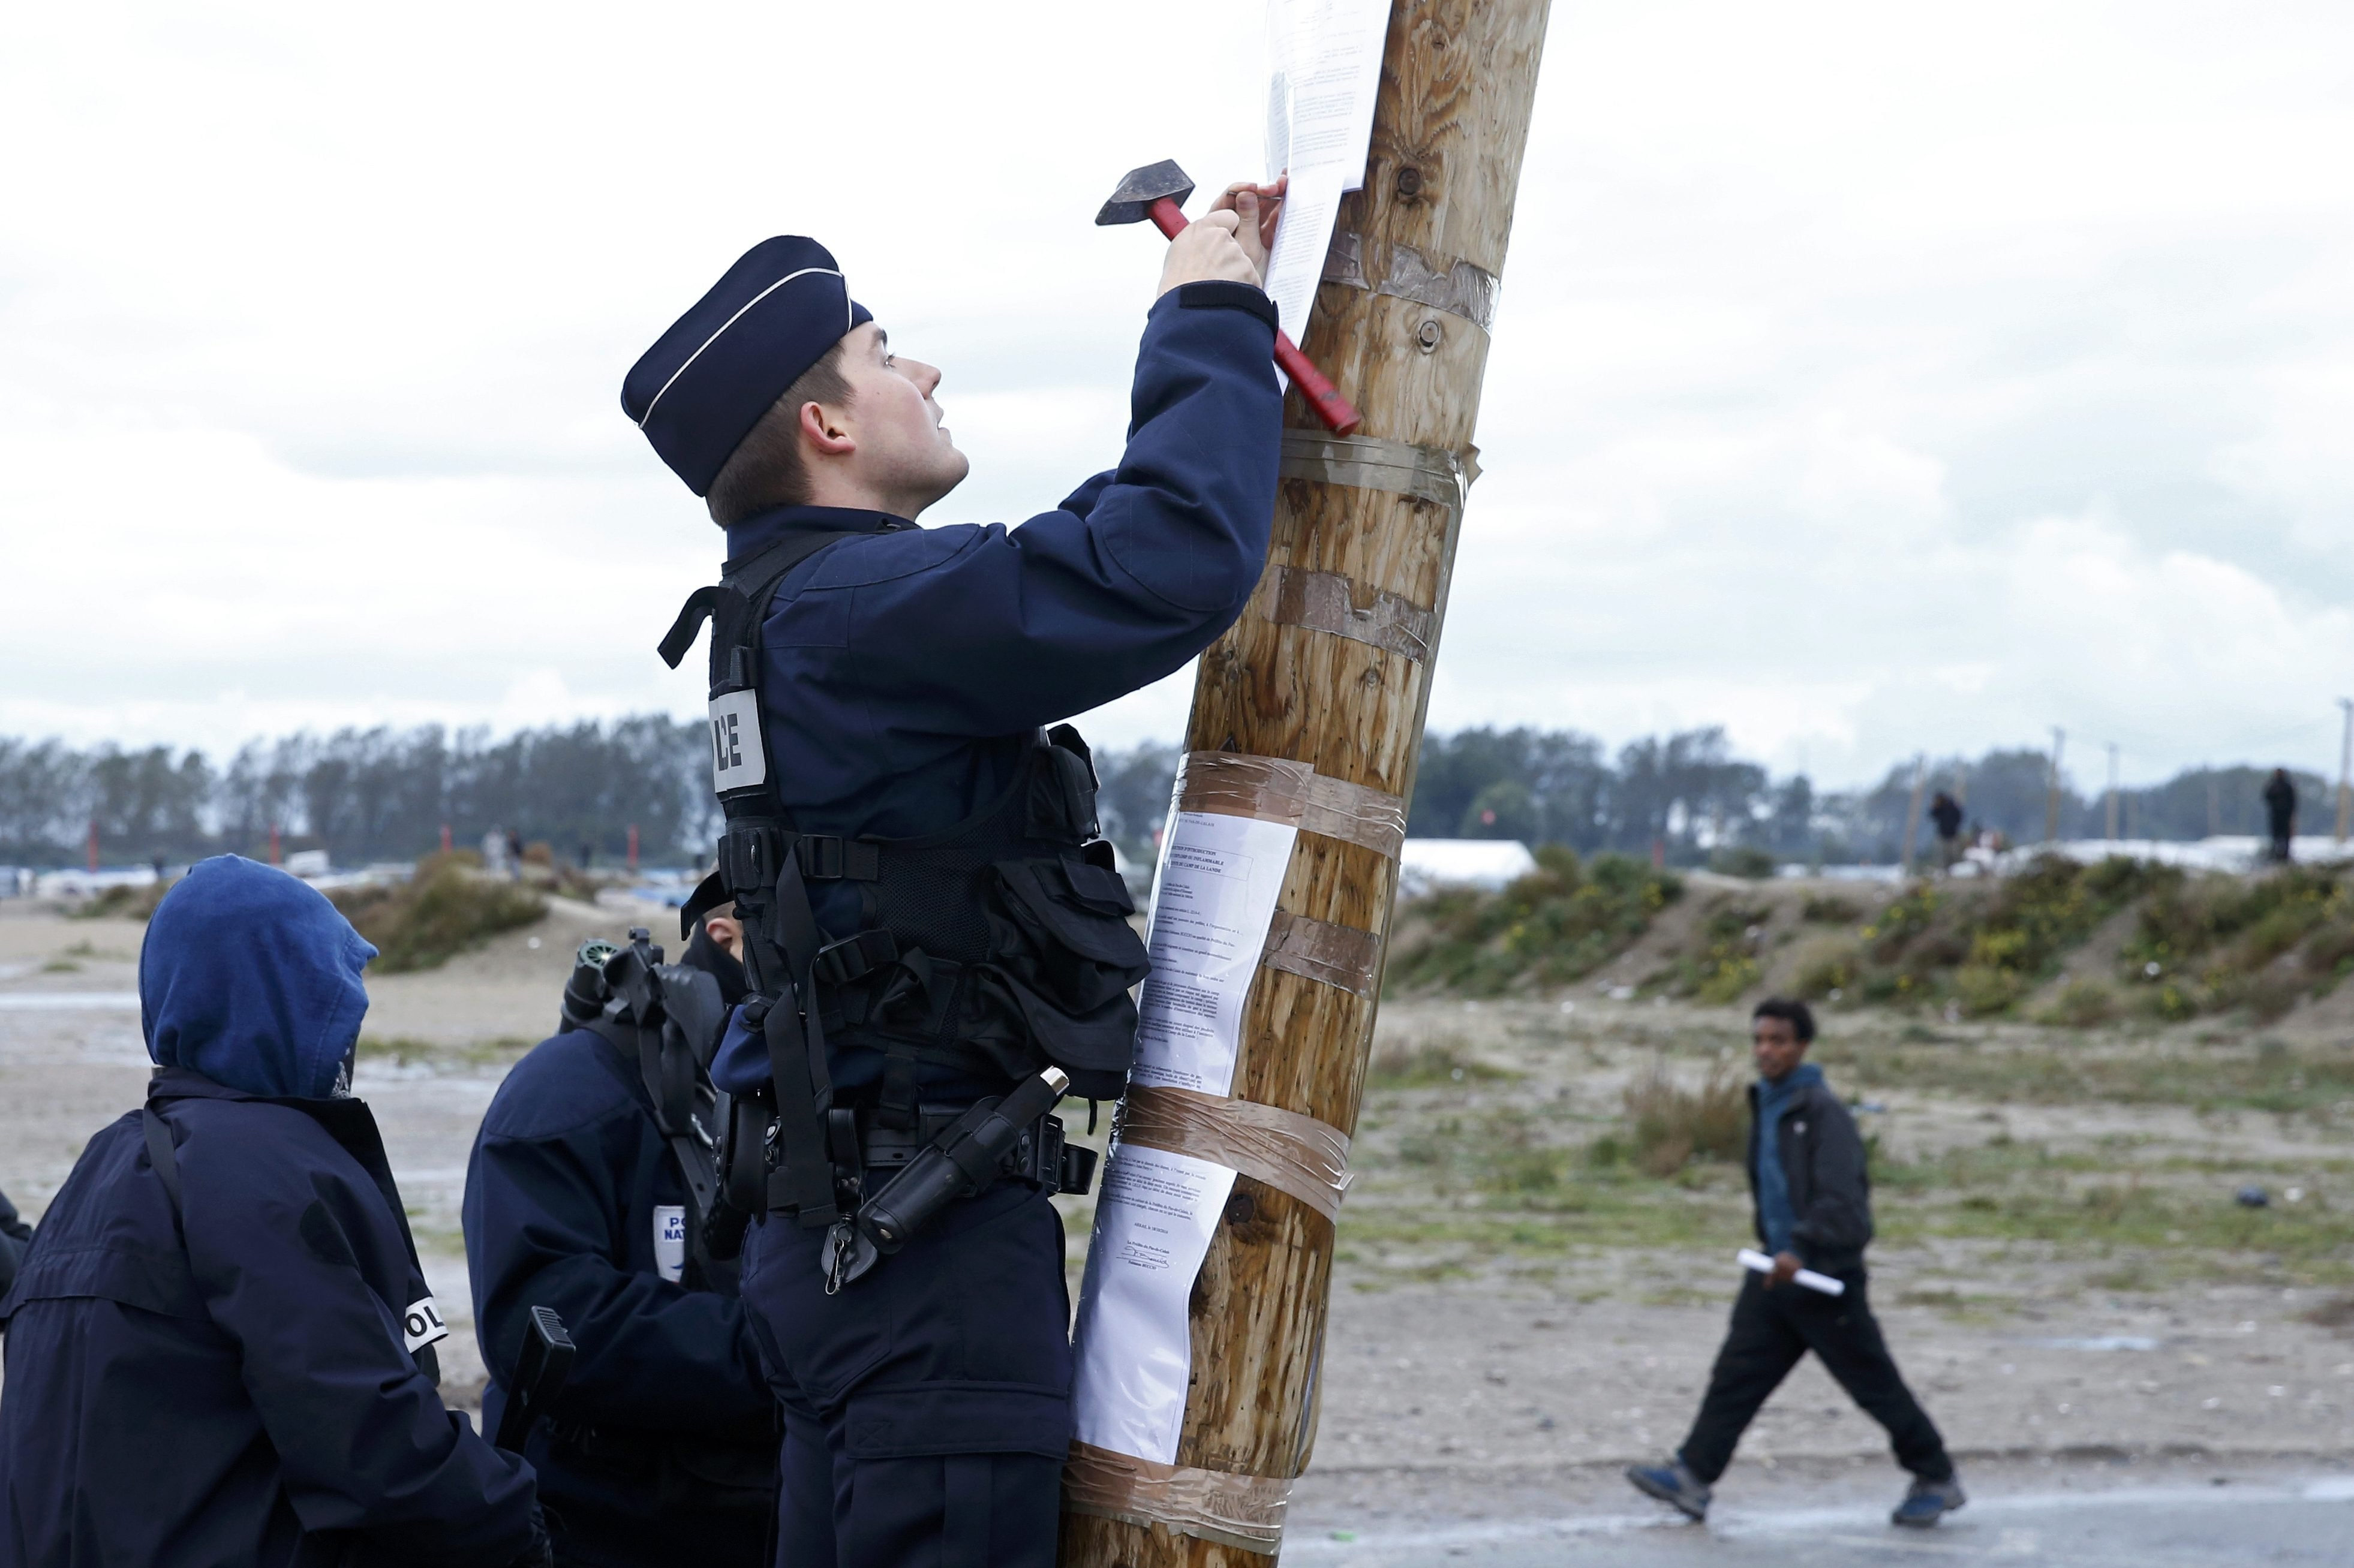 A French policeman posts the official document that announces the dismantling of the makeshift camp called the Jungle, as a migrant walks past in Calais, France, October 21, 2016